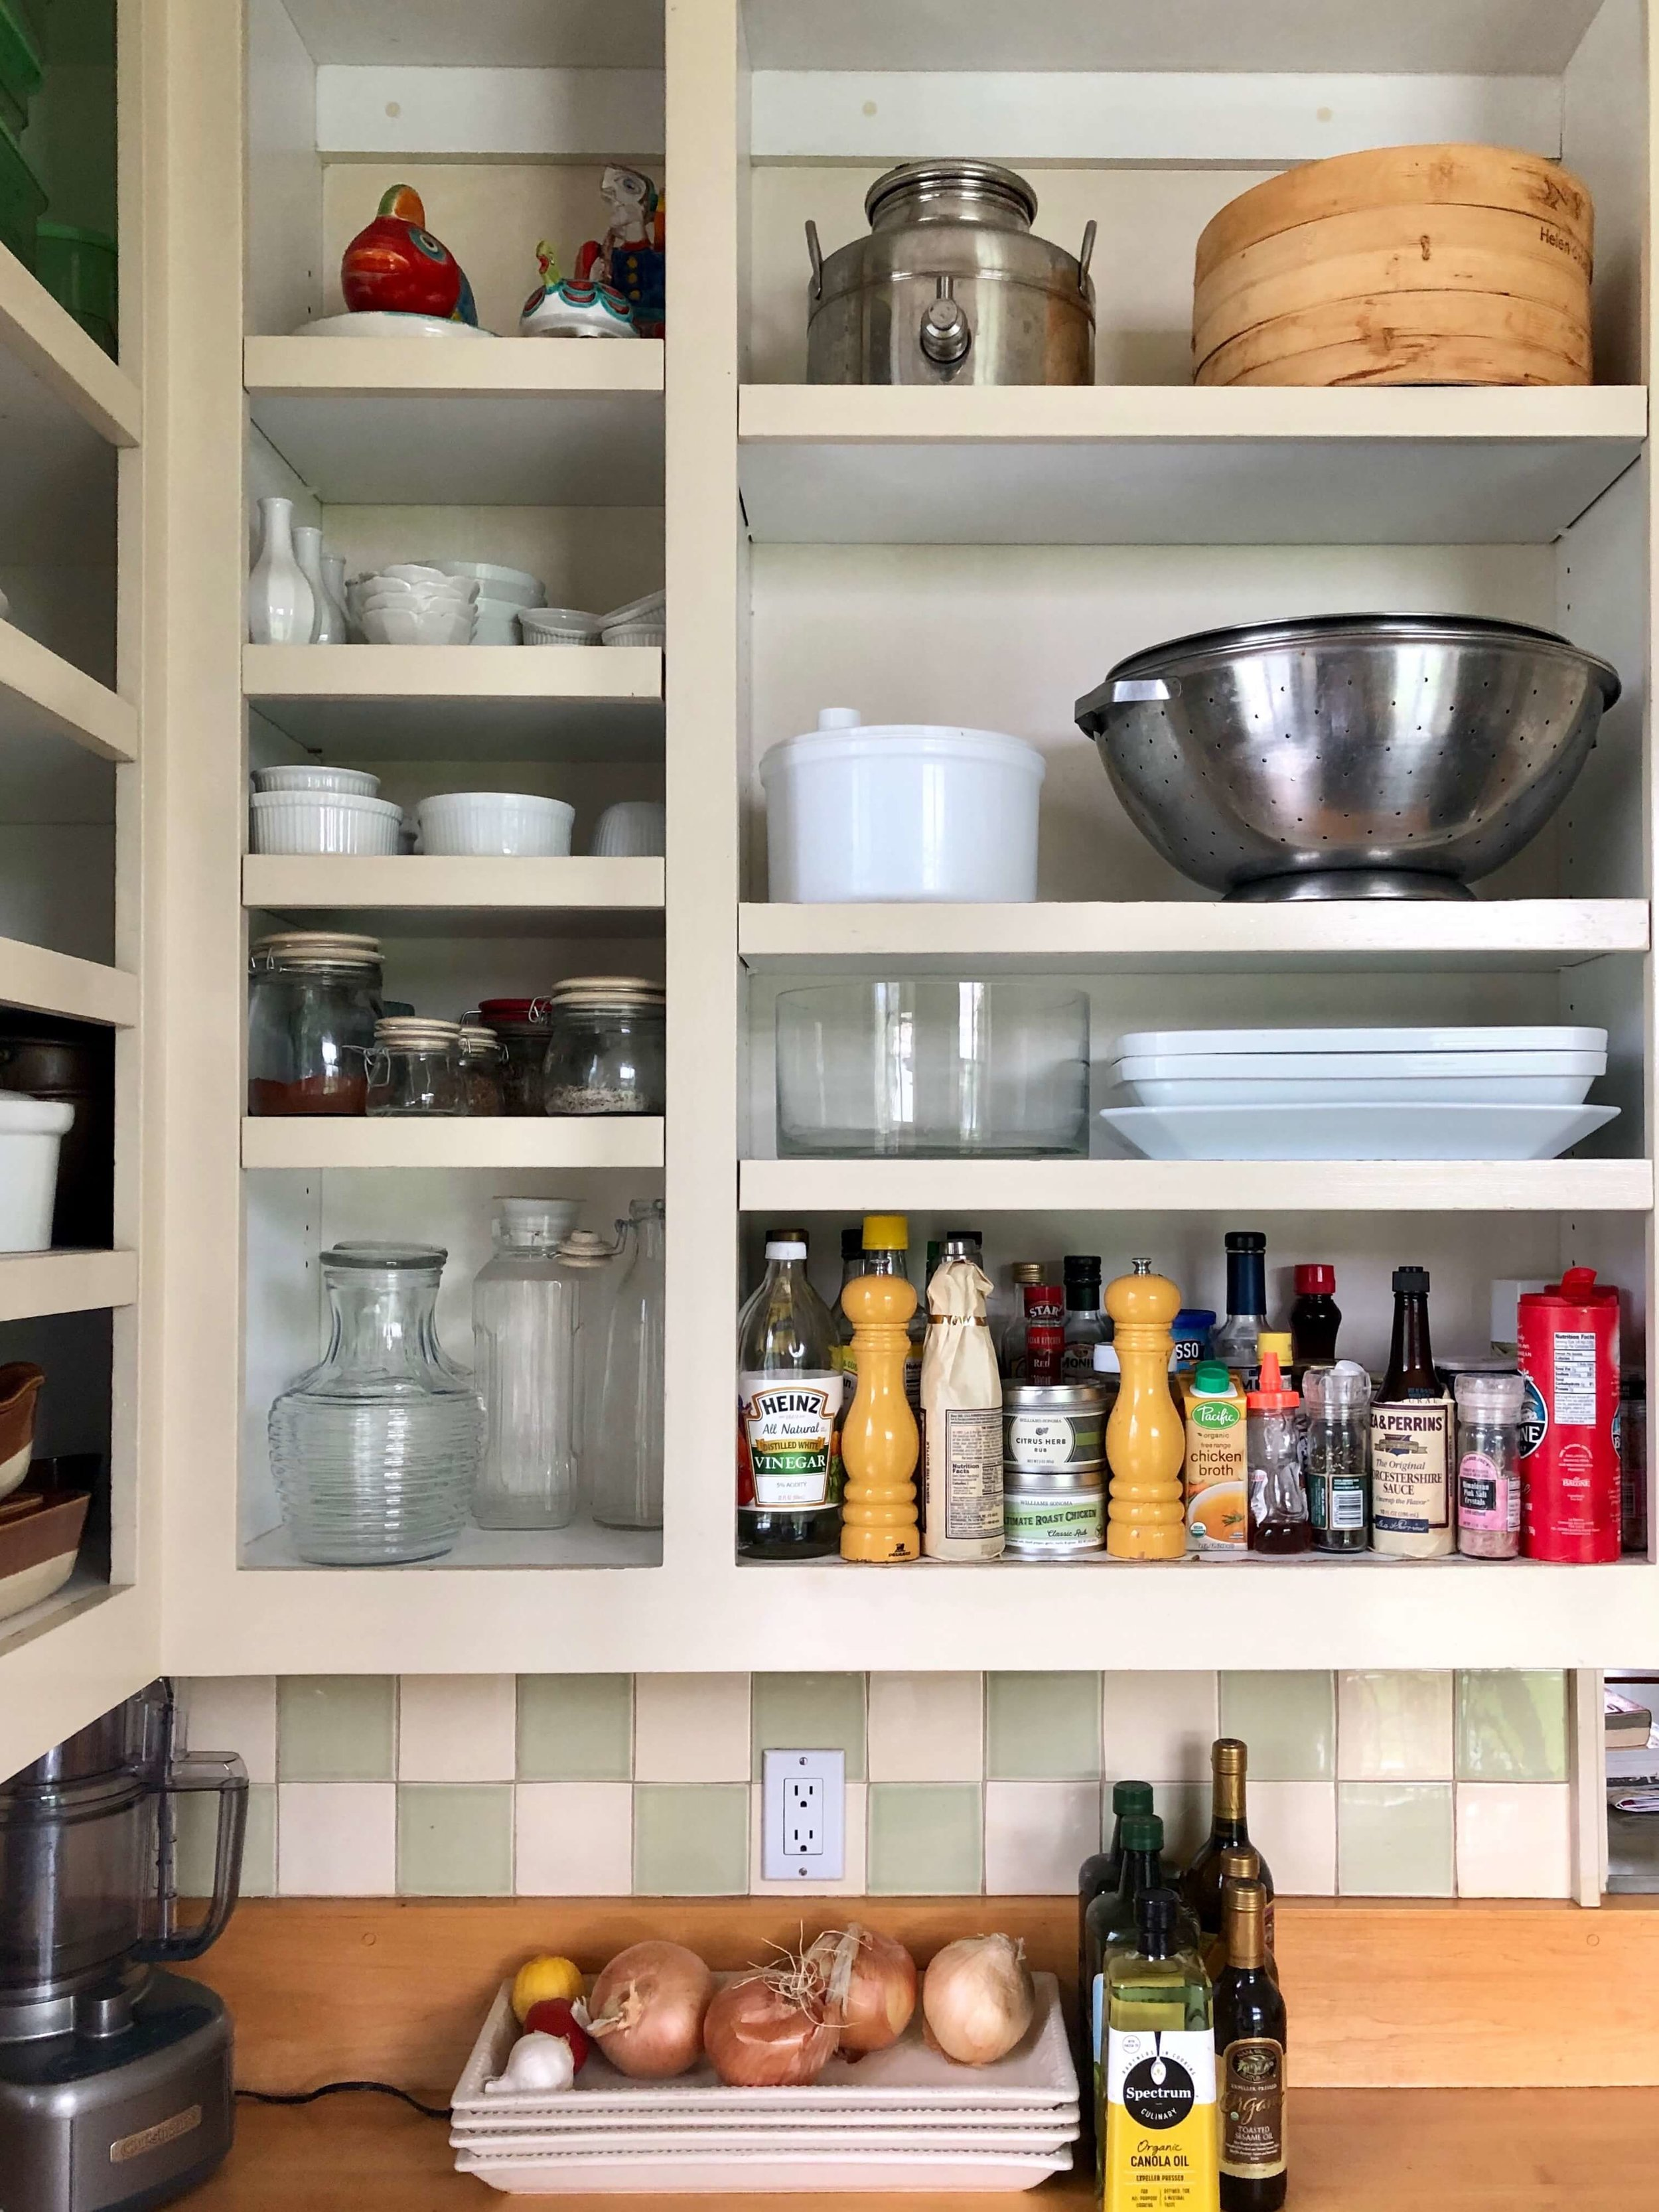 We loved cooking in this kitchen! Here is the open kitchen shelving with assorted spices and dishes in this Sonoma Valley Airbnb vacation rental. #airbnb #winecountry #farmhousekitchen